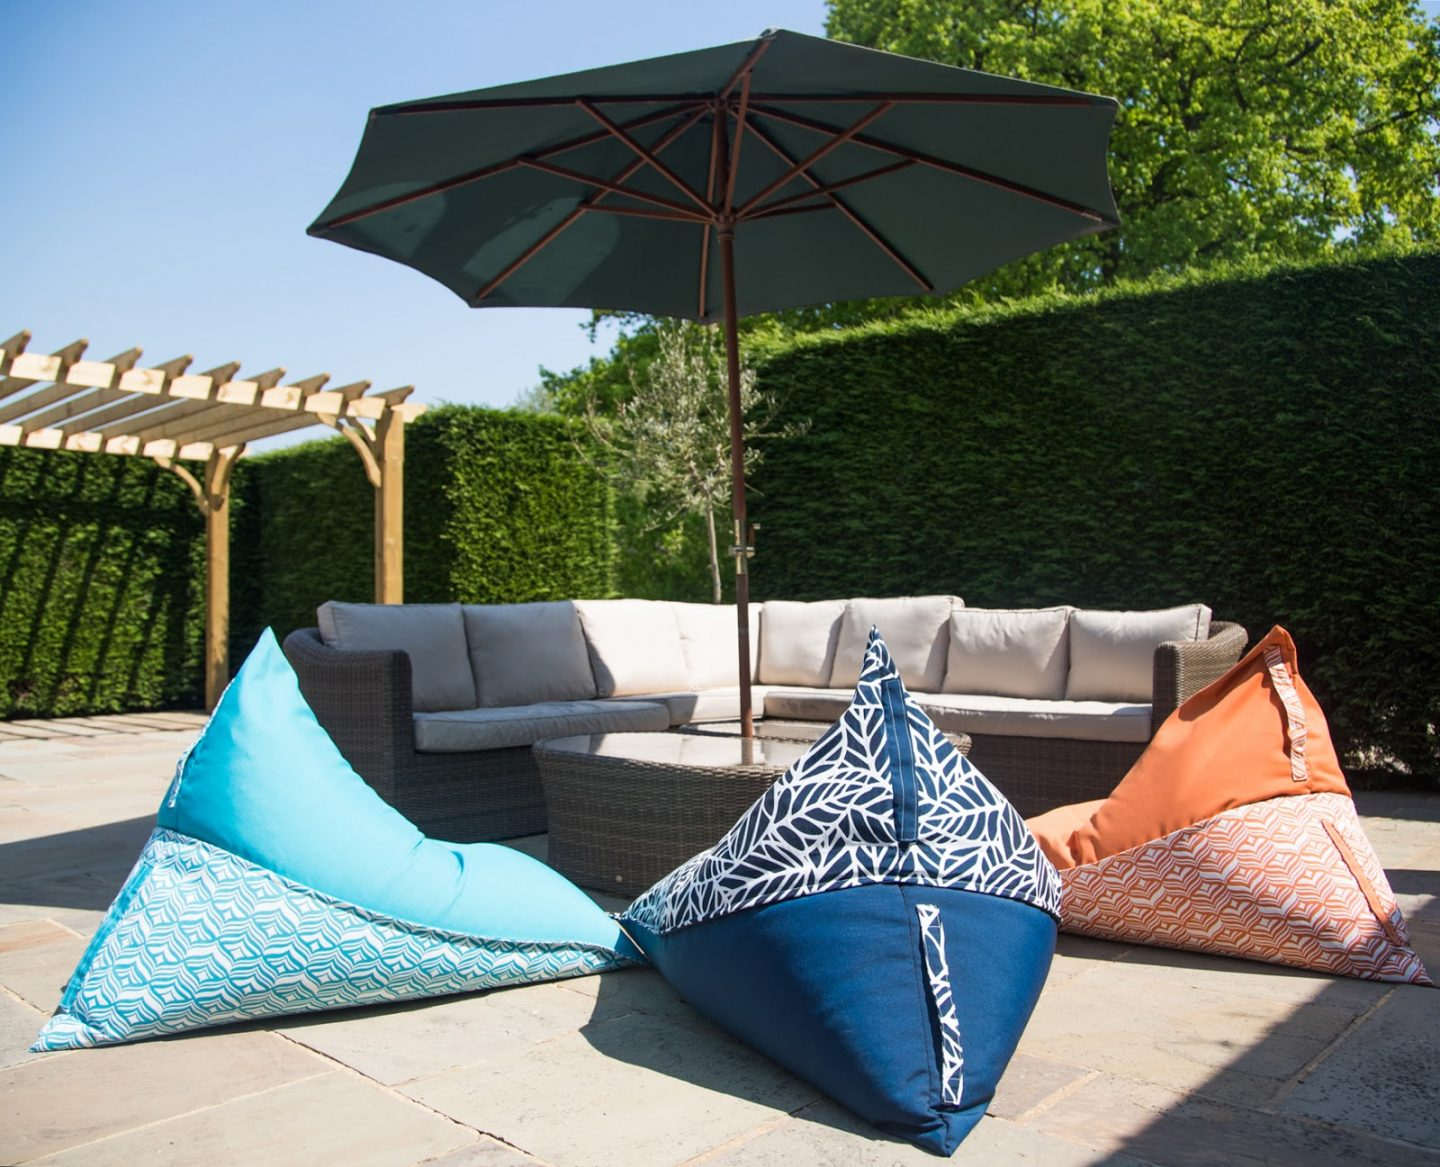 My Top Picks: New Garden Seating and Furniture